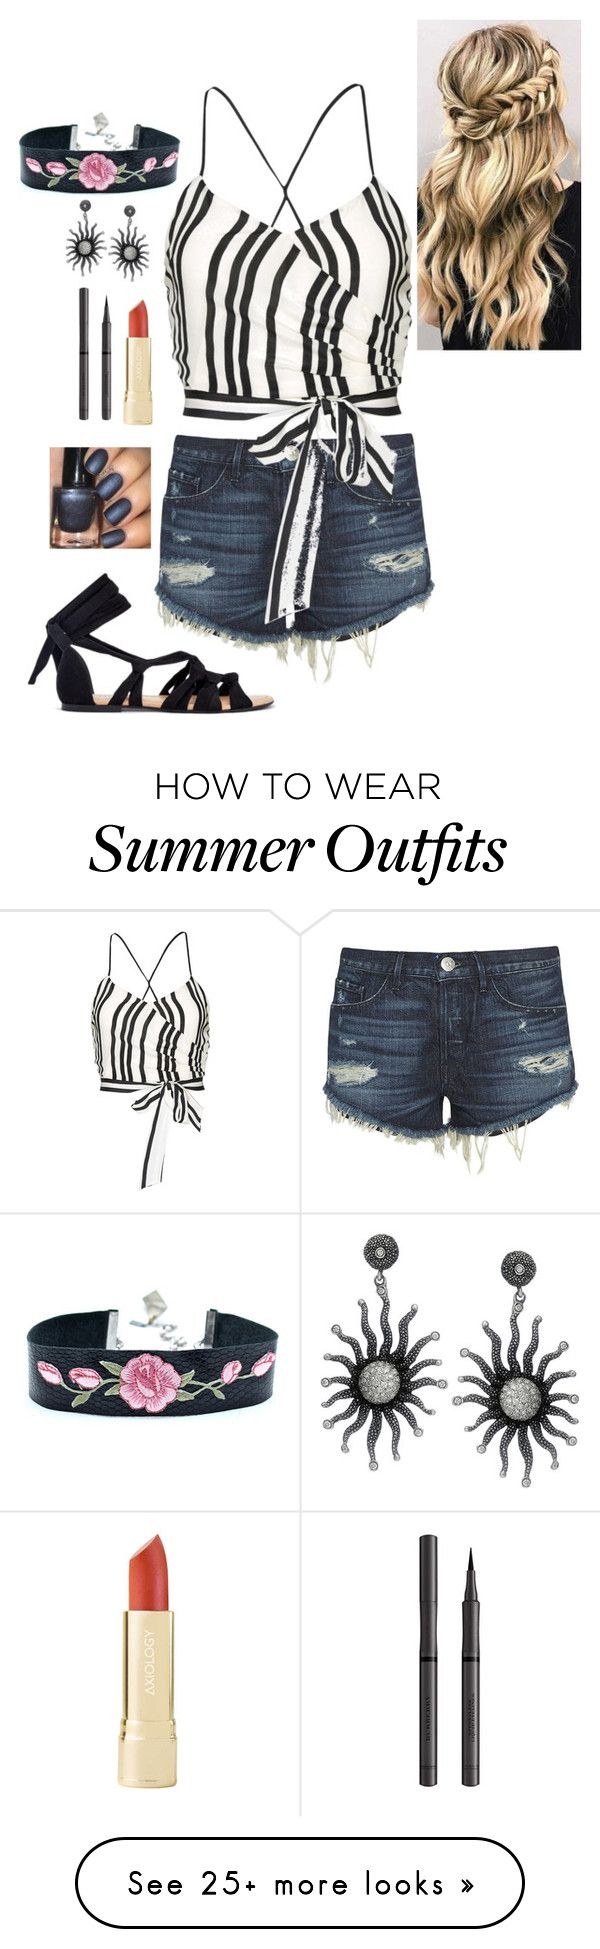 """Summer time outfit"" by goddessofbacon on Polyvore featuring 3x1, Alic..."